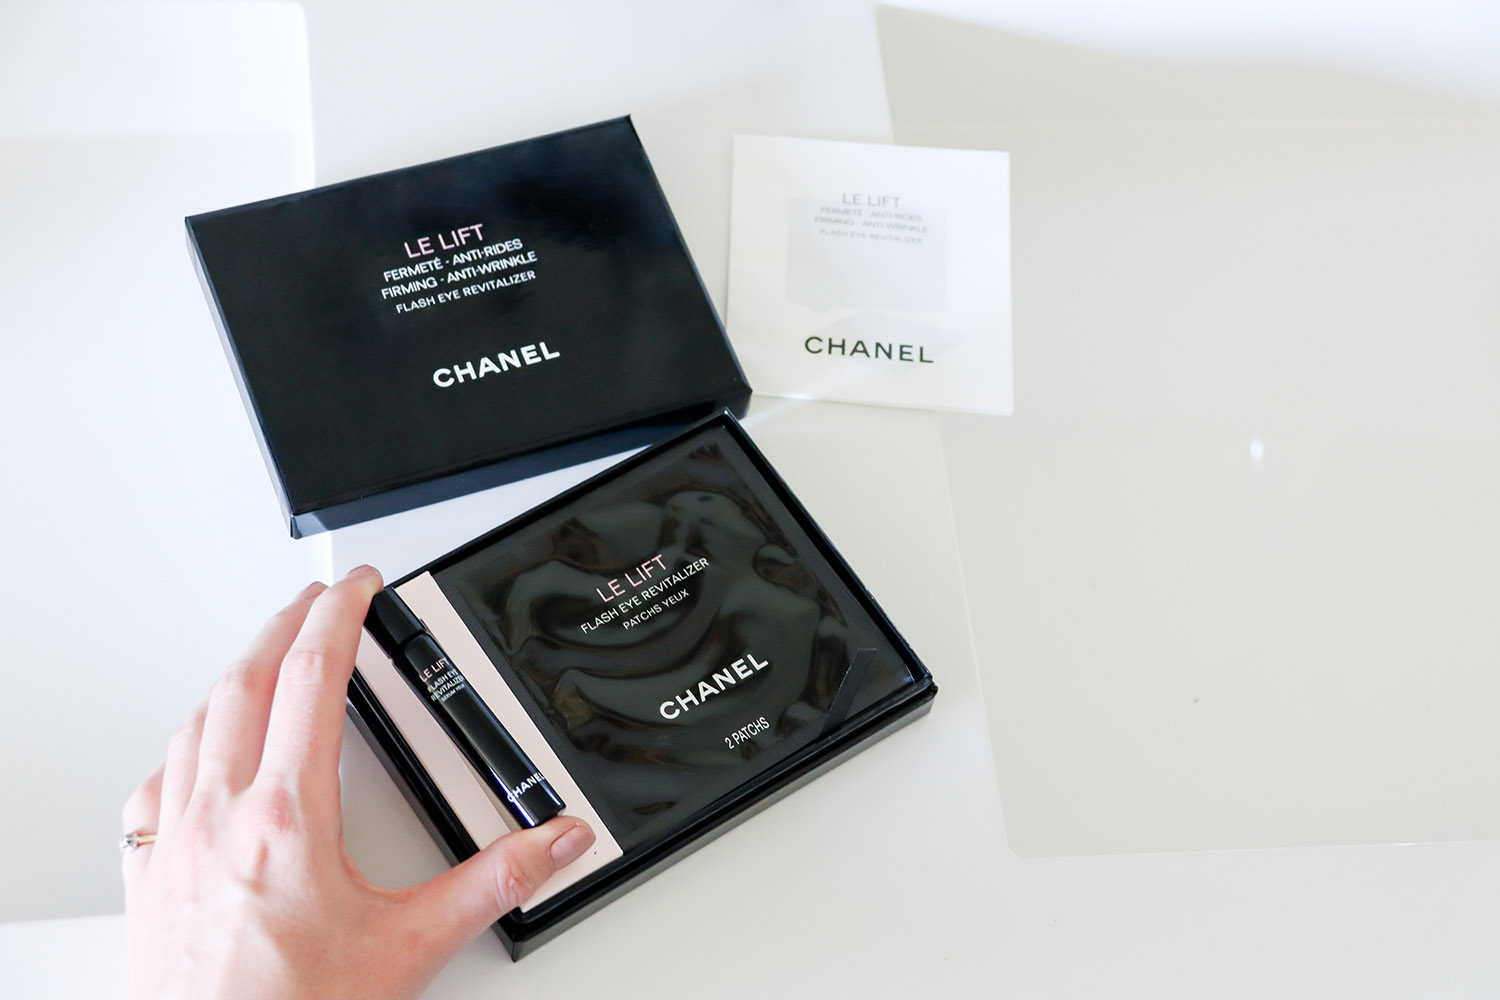 floortjeloves, chanel, Chanel beauty, chanel le lift, chanel skincare, skincare, mother daughter time, mother daughter, Mother's Day, Mother's Day gift